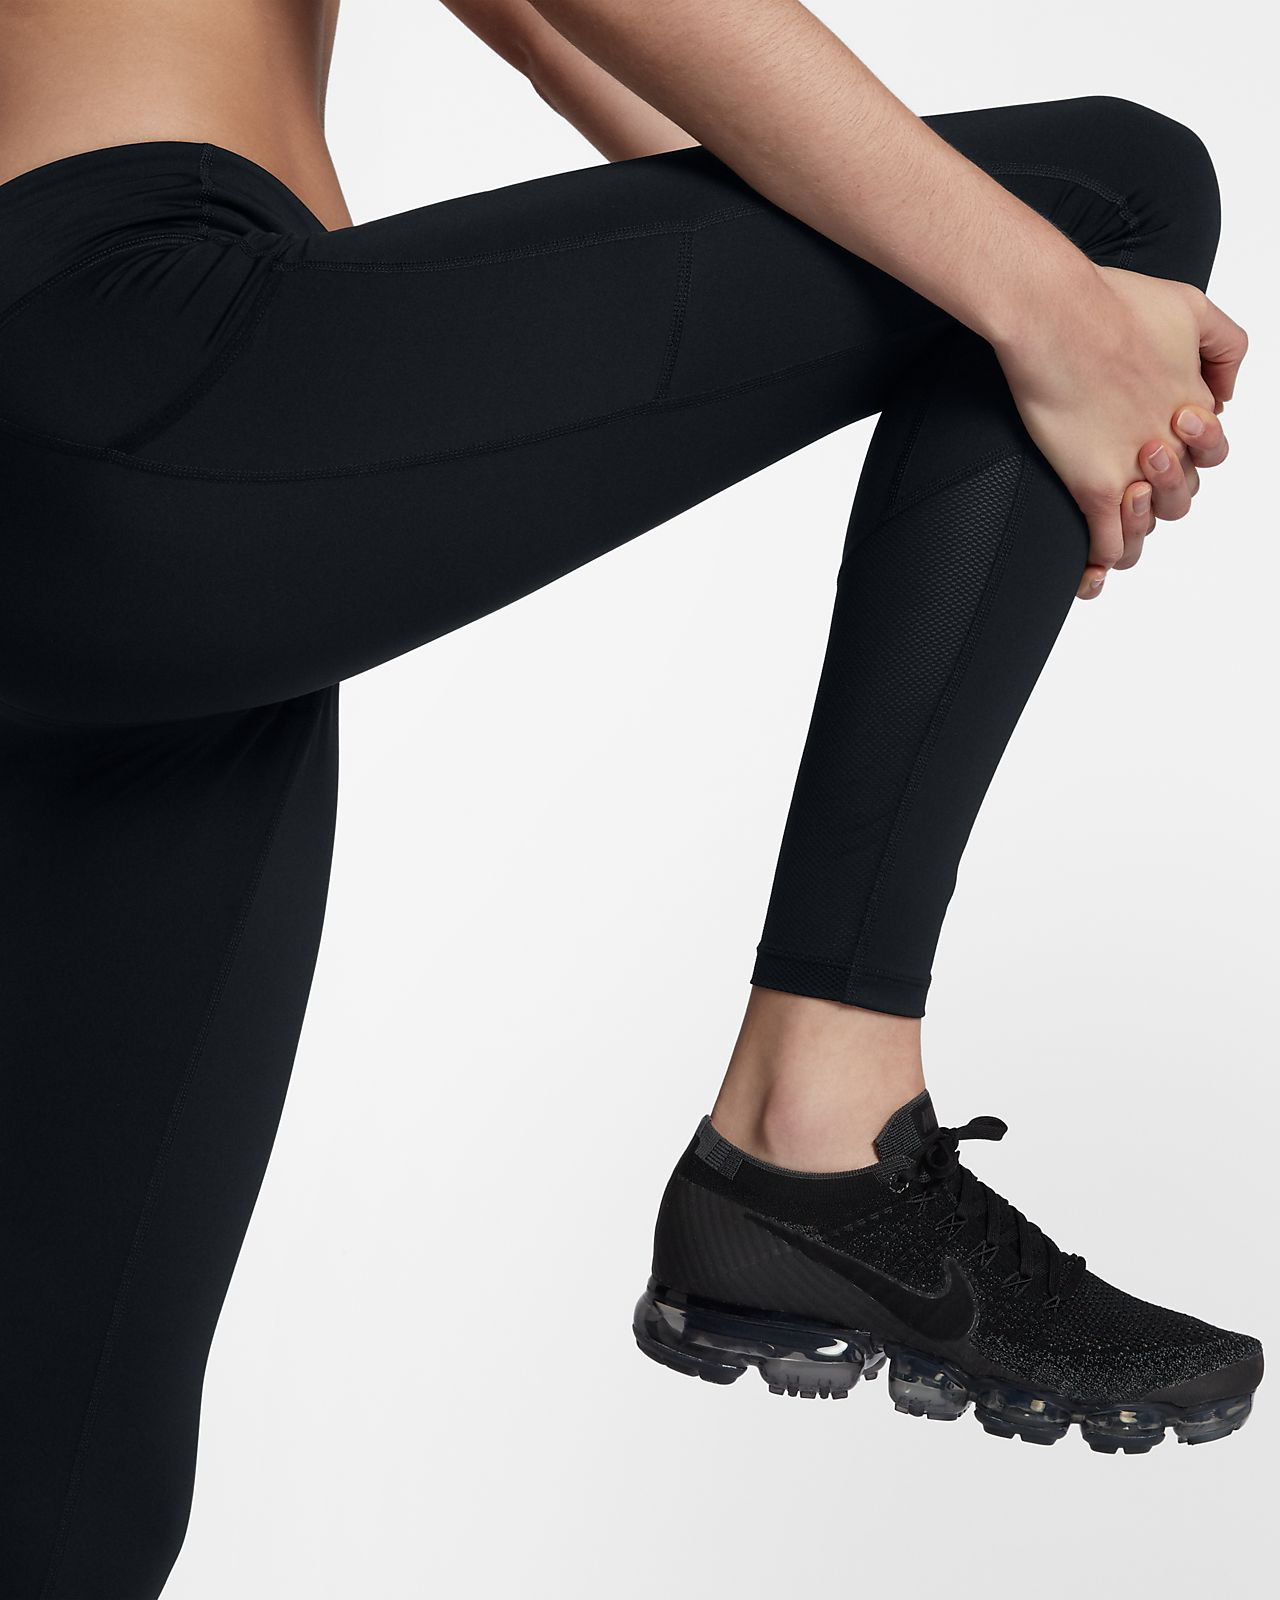 706a0cdcfc9c1 Nike Racer Women's Mid-Rise Running Tights. Nike.com IL